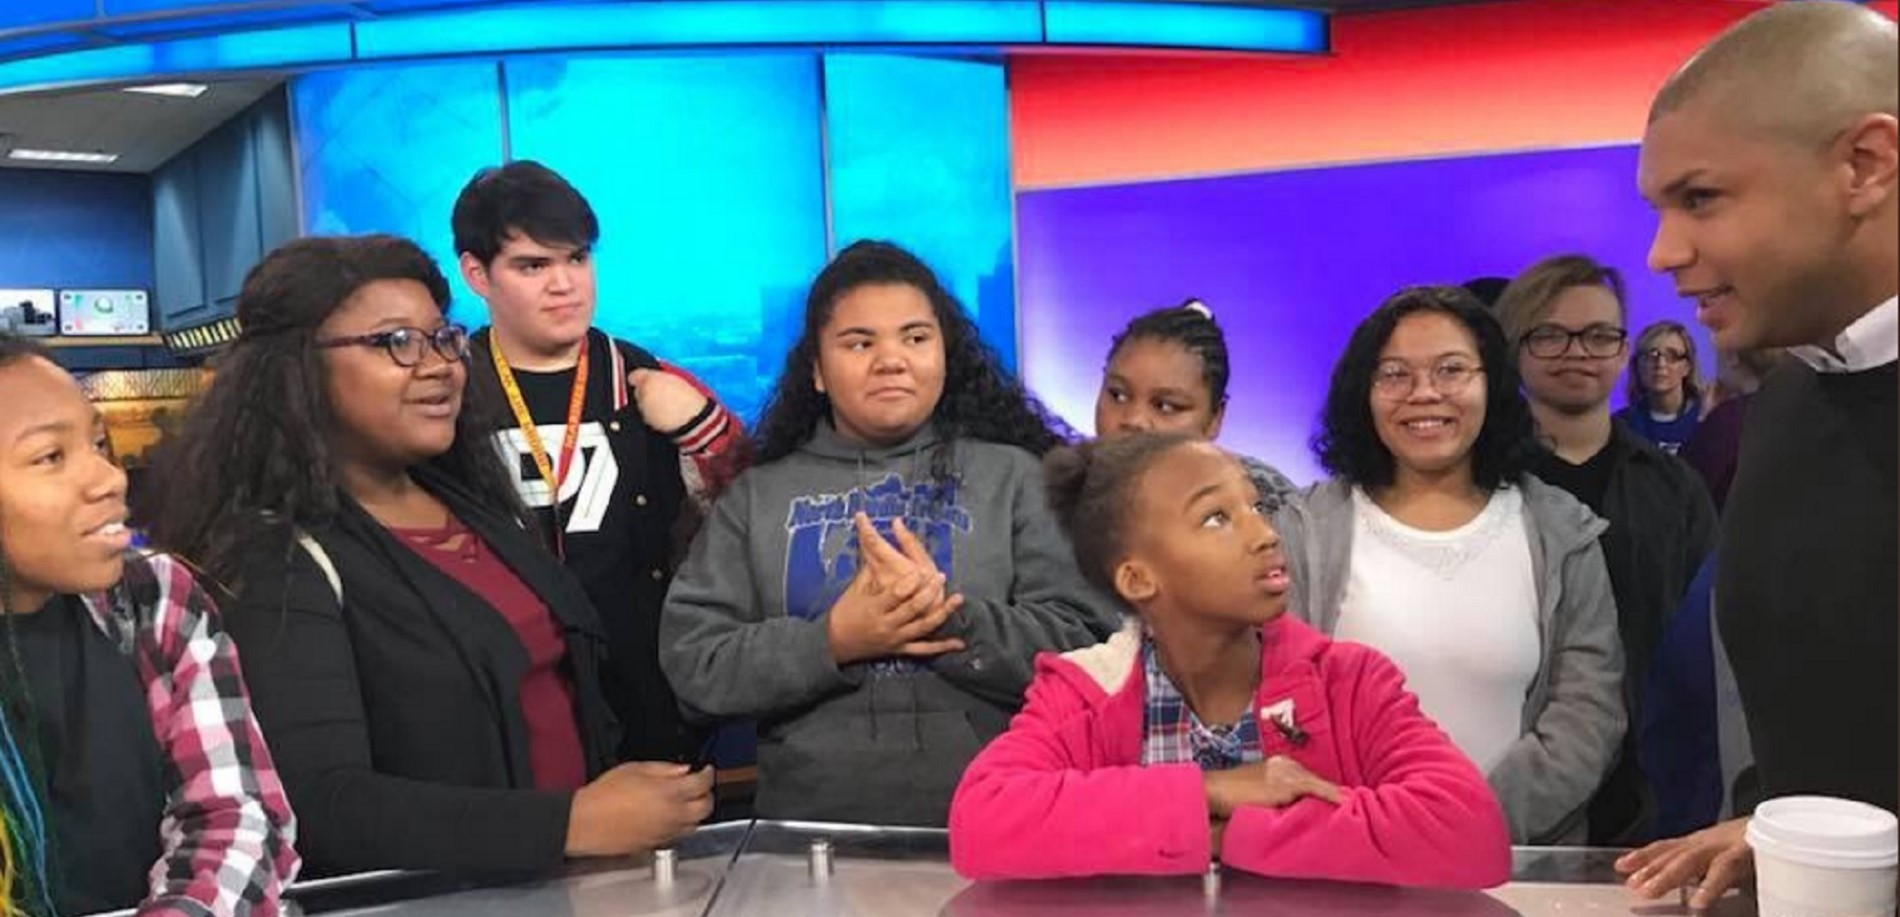 North Hardin High School and North Middle School students recently toured the studios at WLKY-TV.